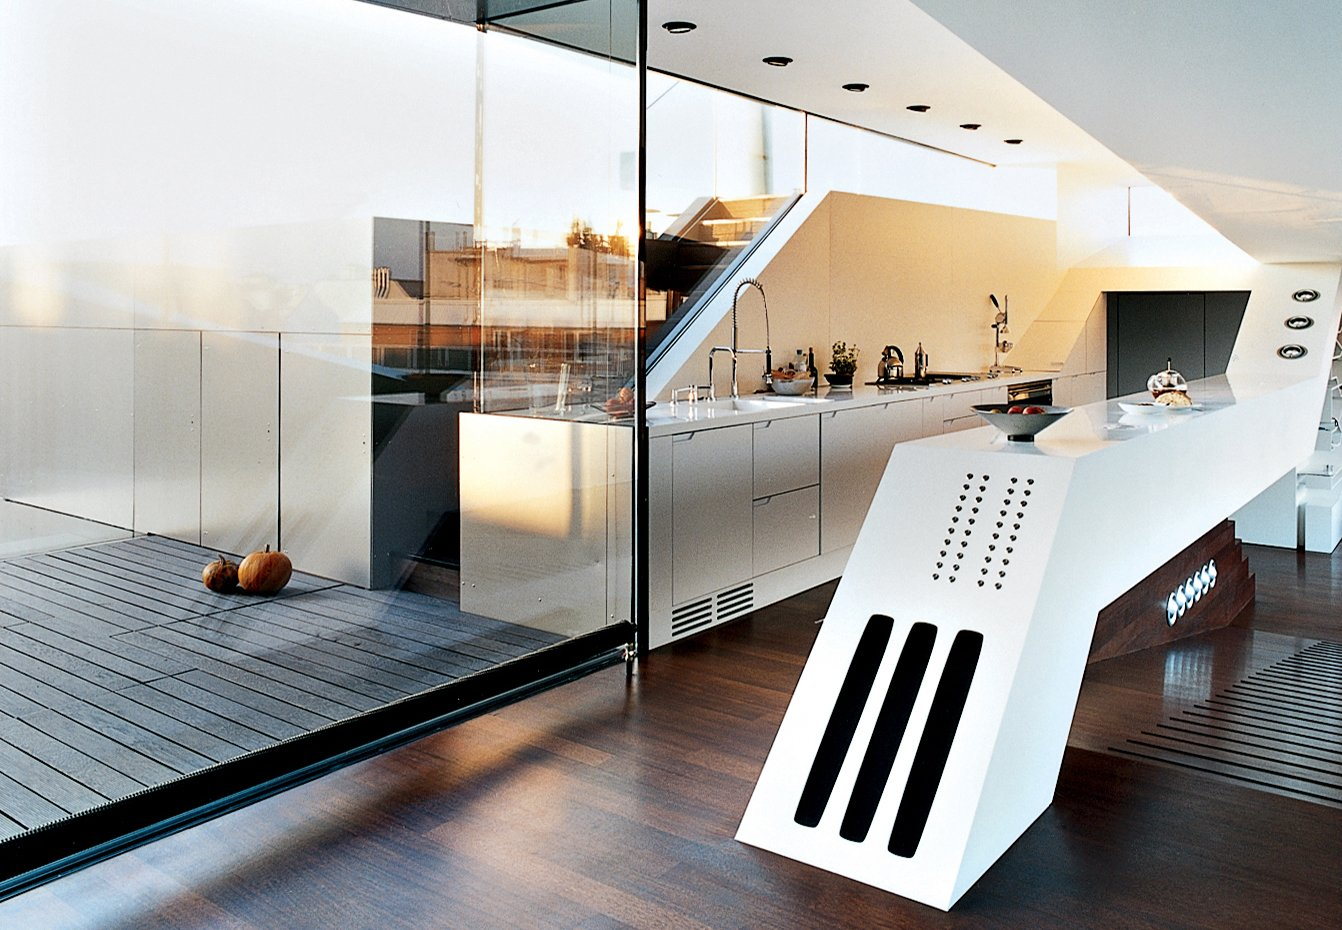 We award points for ingenuity, like this Vienna penthouse's kitchen counter that contains hi-fi speakers and a BUS-system panel of 18 buttons for controlling lights, curtains, heating, ventilation, etc.  Your Rooms We Love: Modern Countertop Inspiration by Kelsey Keith